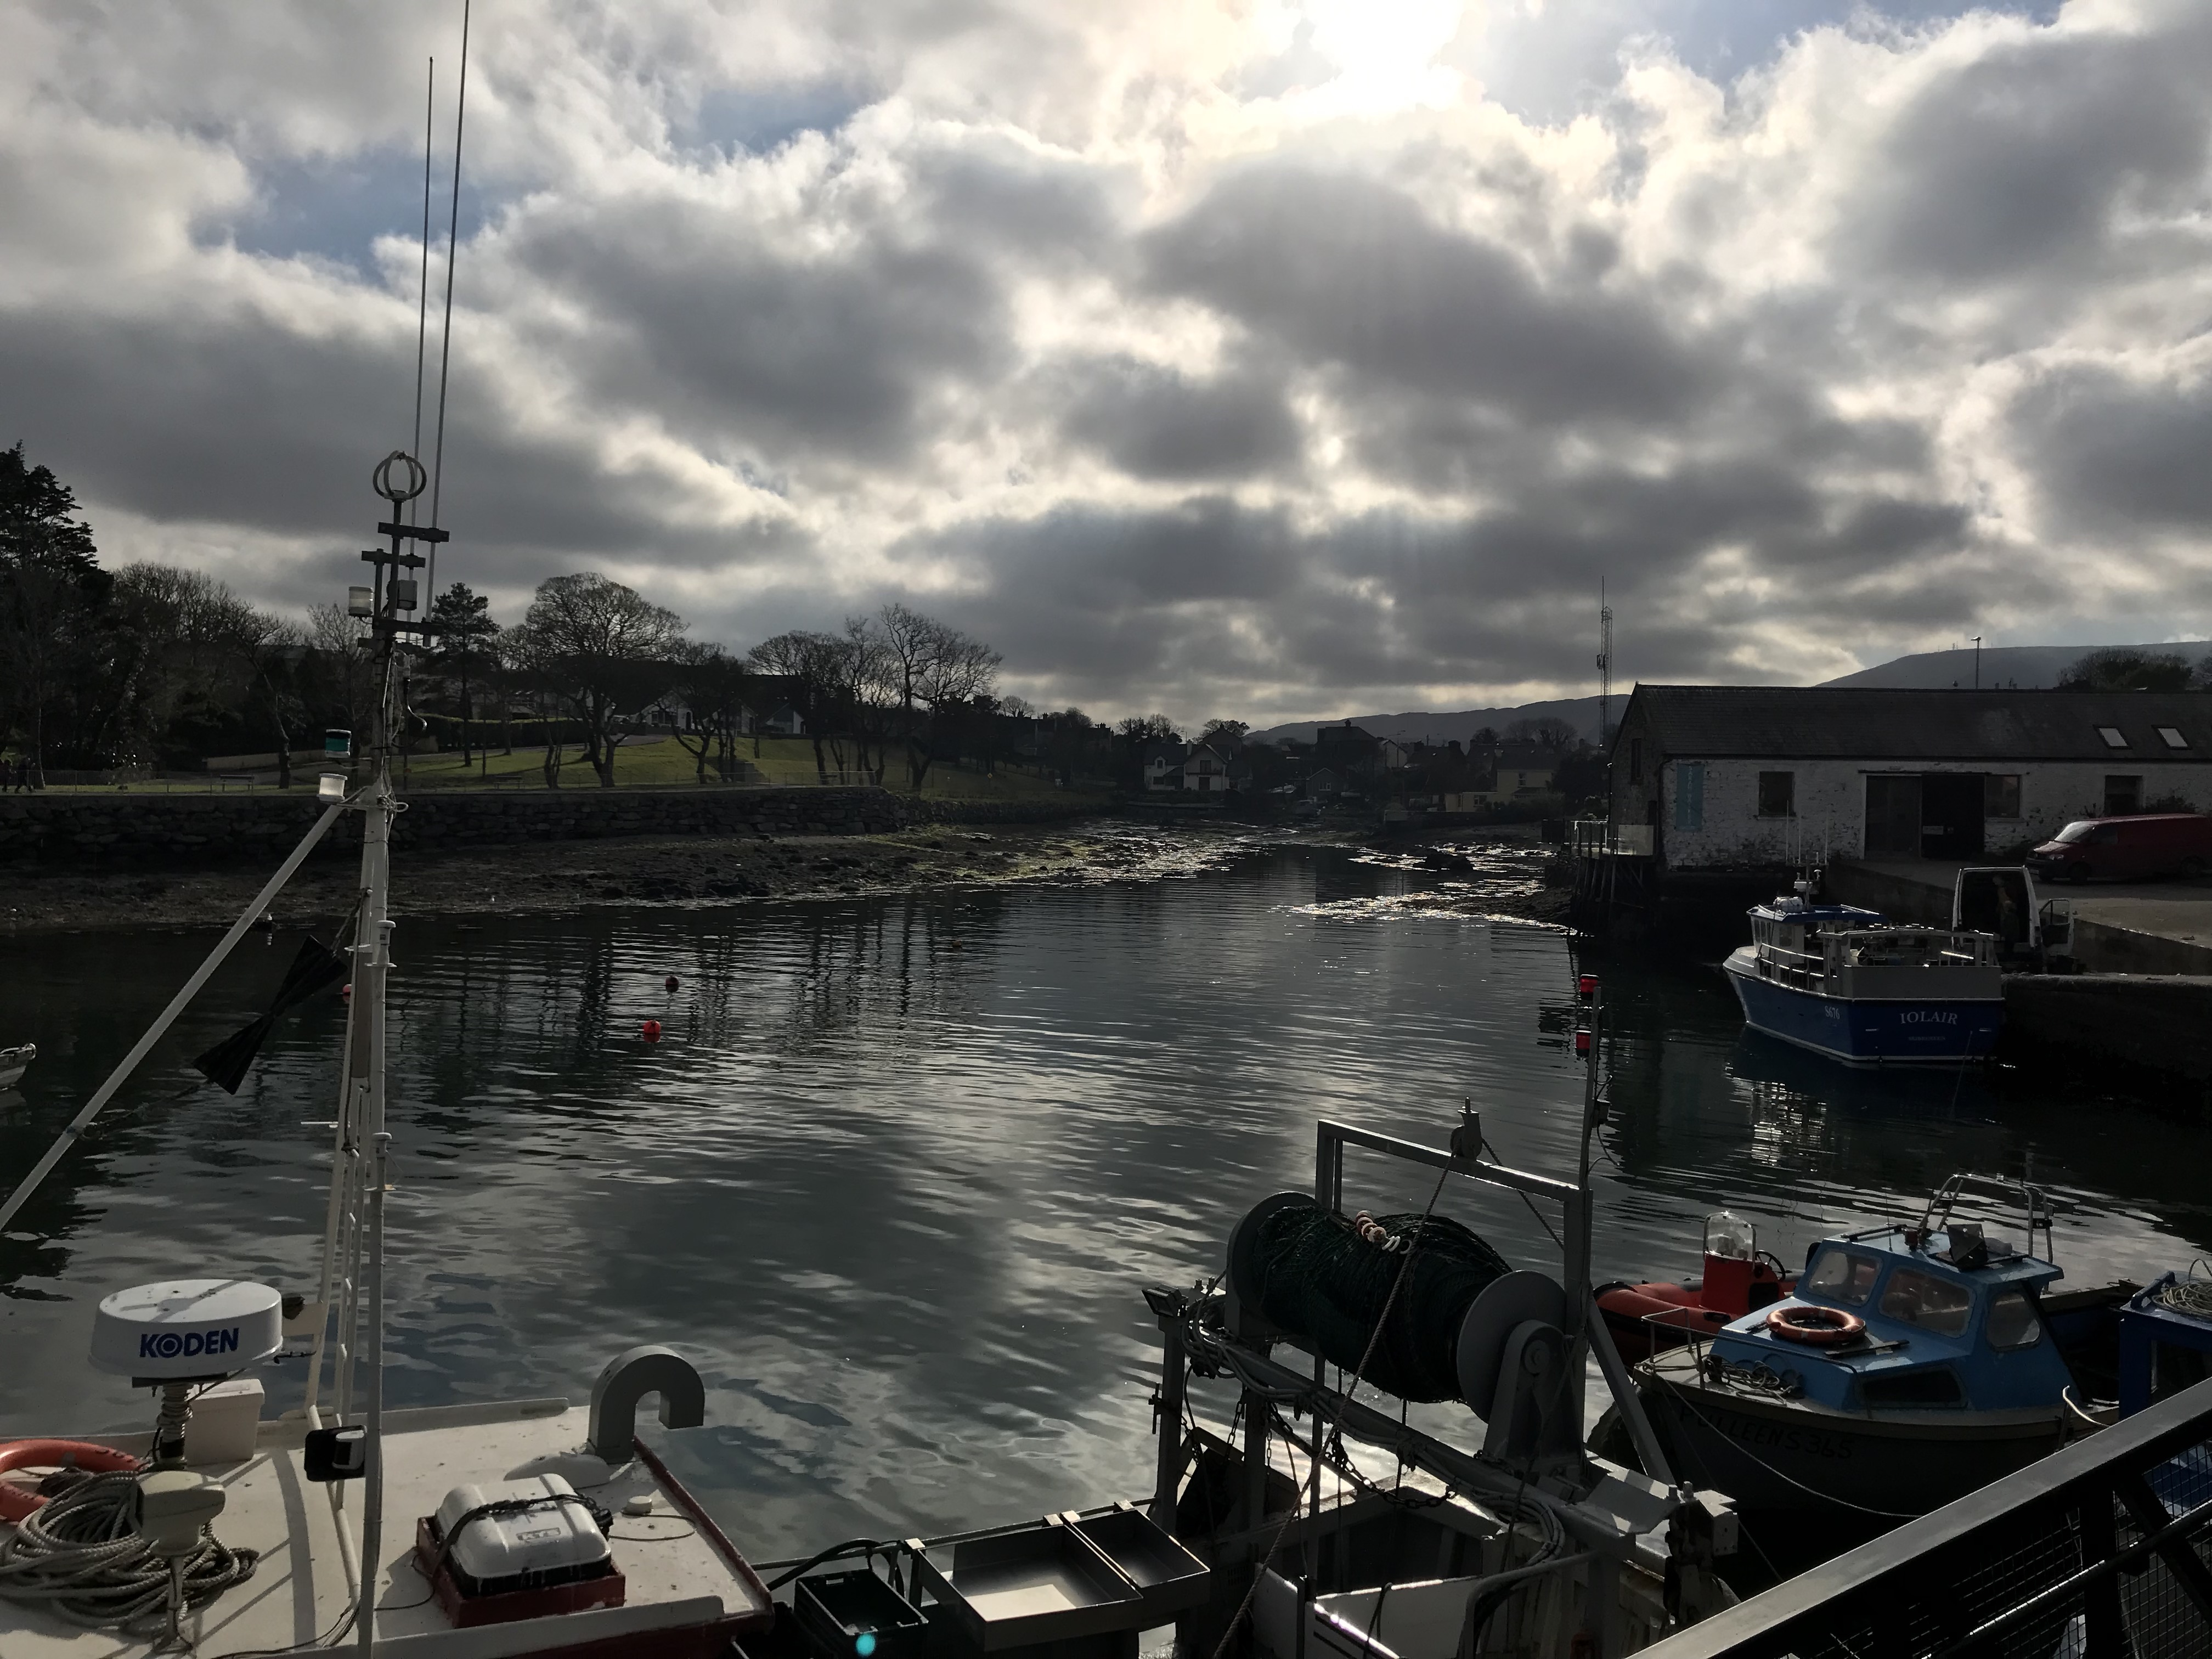 Cloudy brooding sky overlooking a harbor inlet in a small Irish fishing village